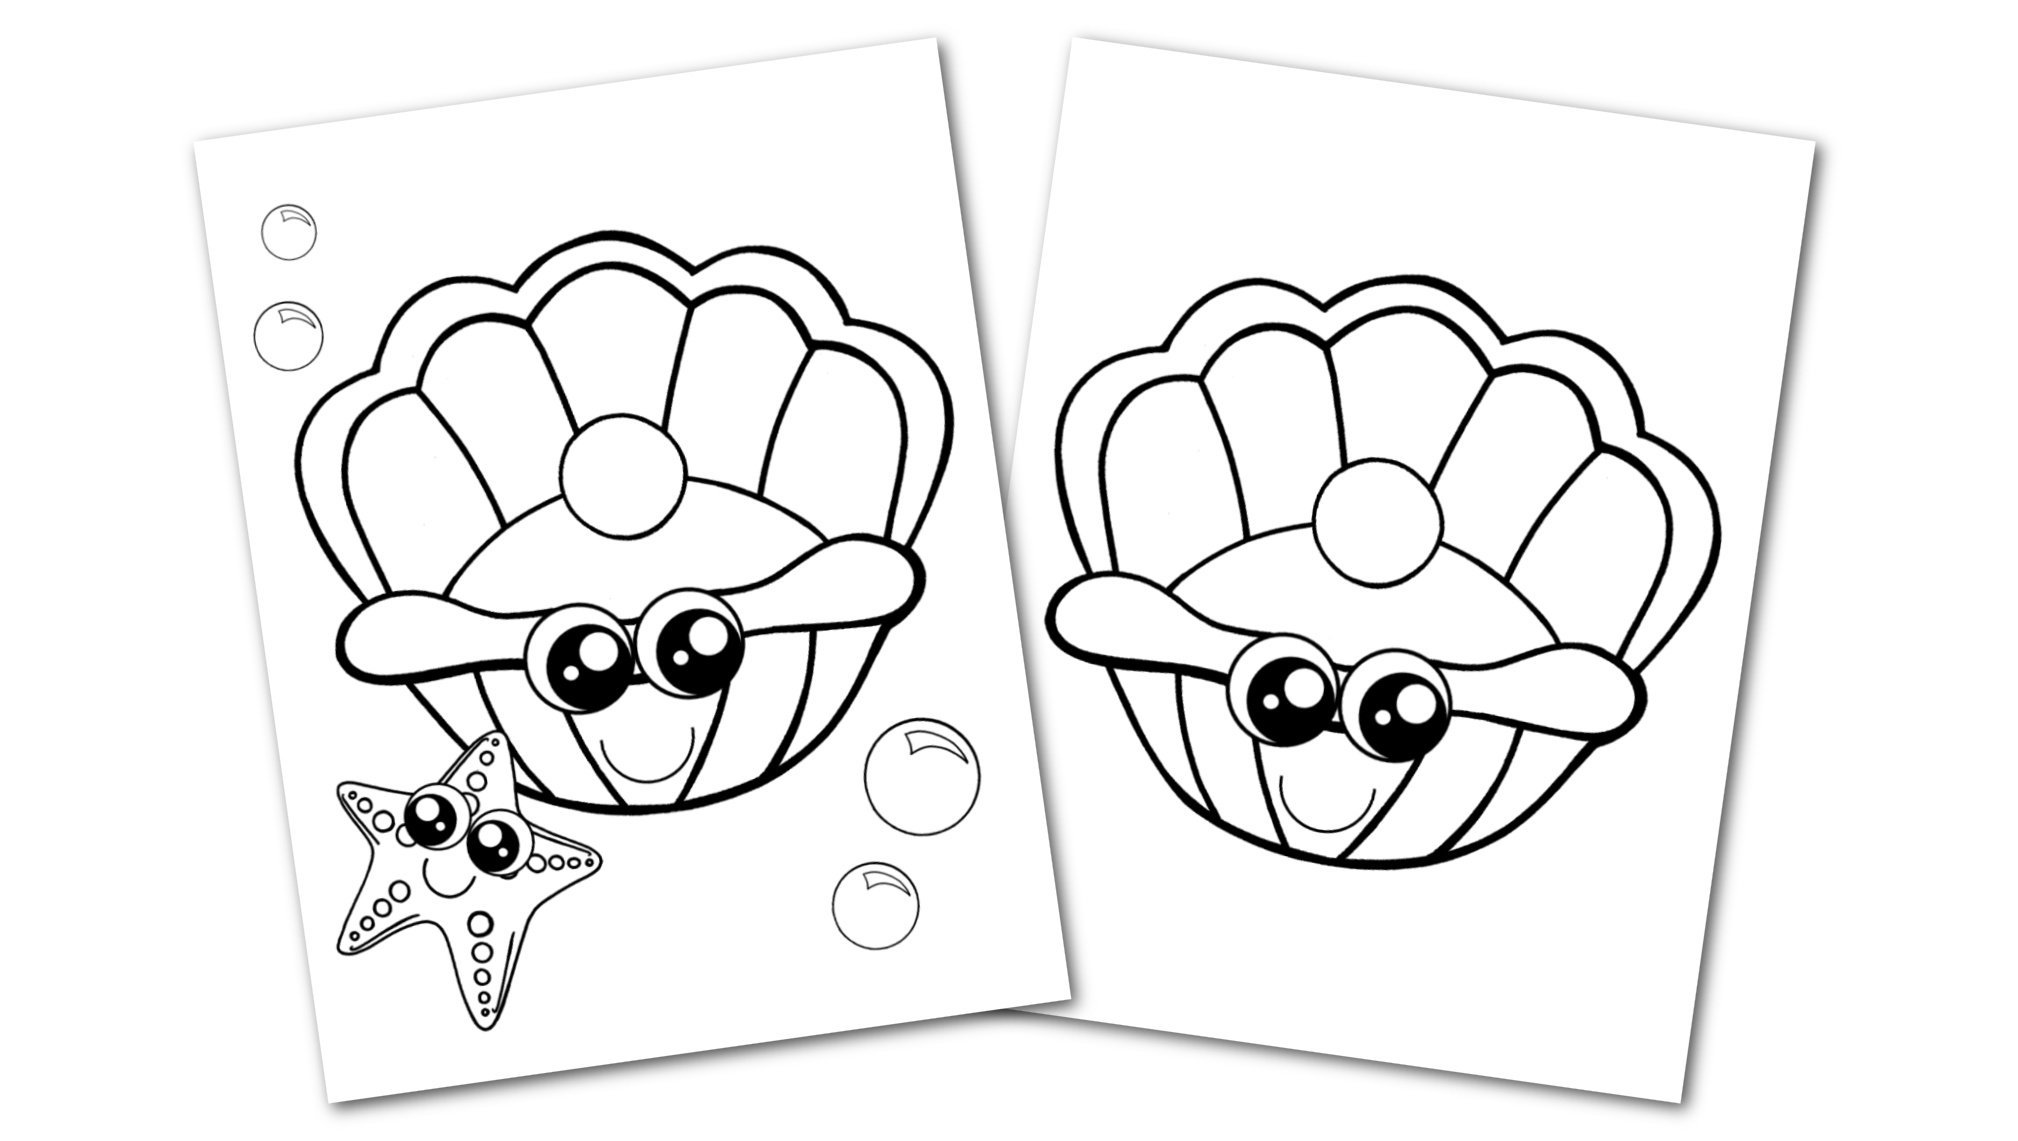 Free Printable Clam Shell Ocean Animal Convertkit for Toddlers, Kids and Preschoolers